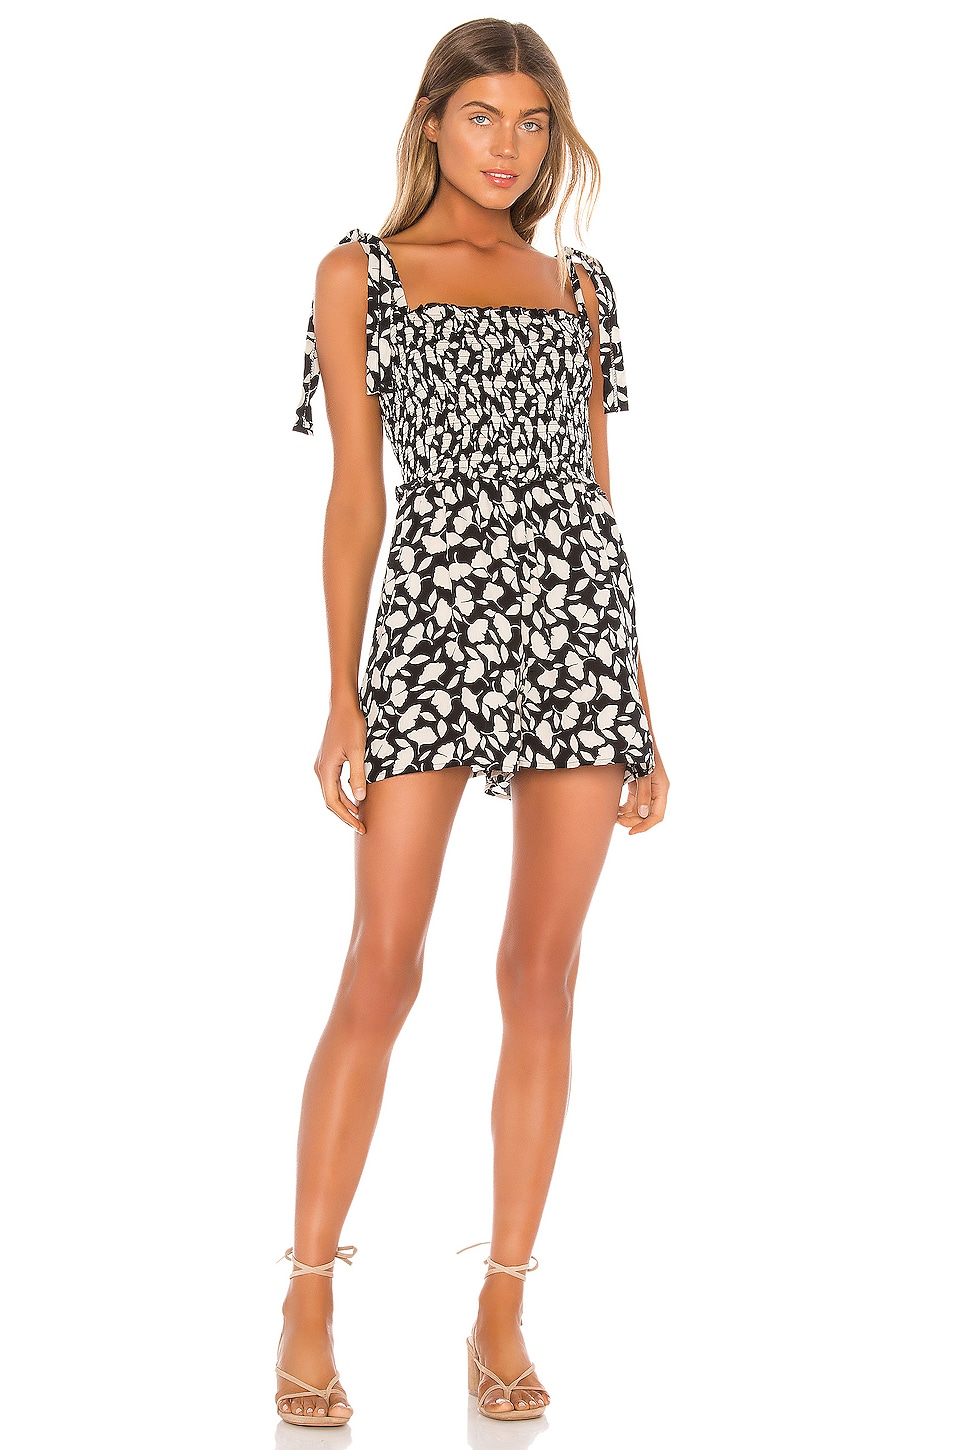 Jungle Path Tank Romper                   AMUSE SOCIETY                                                                                                                             CA$ 75.85 6